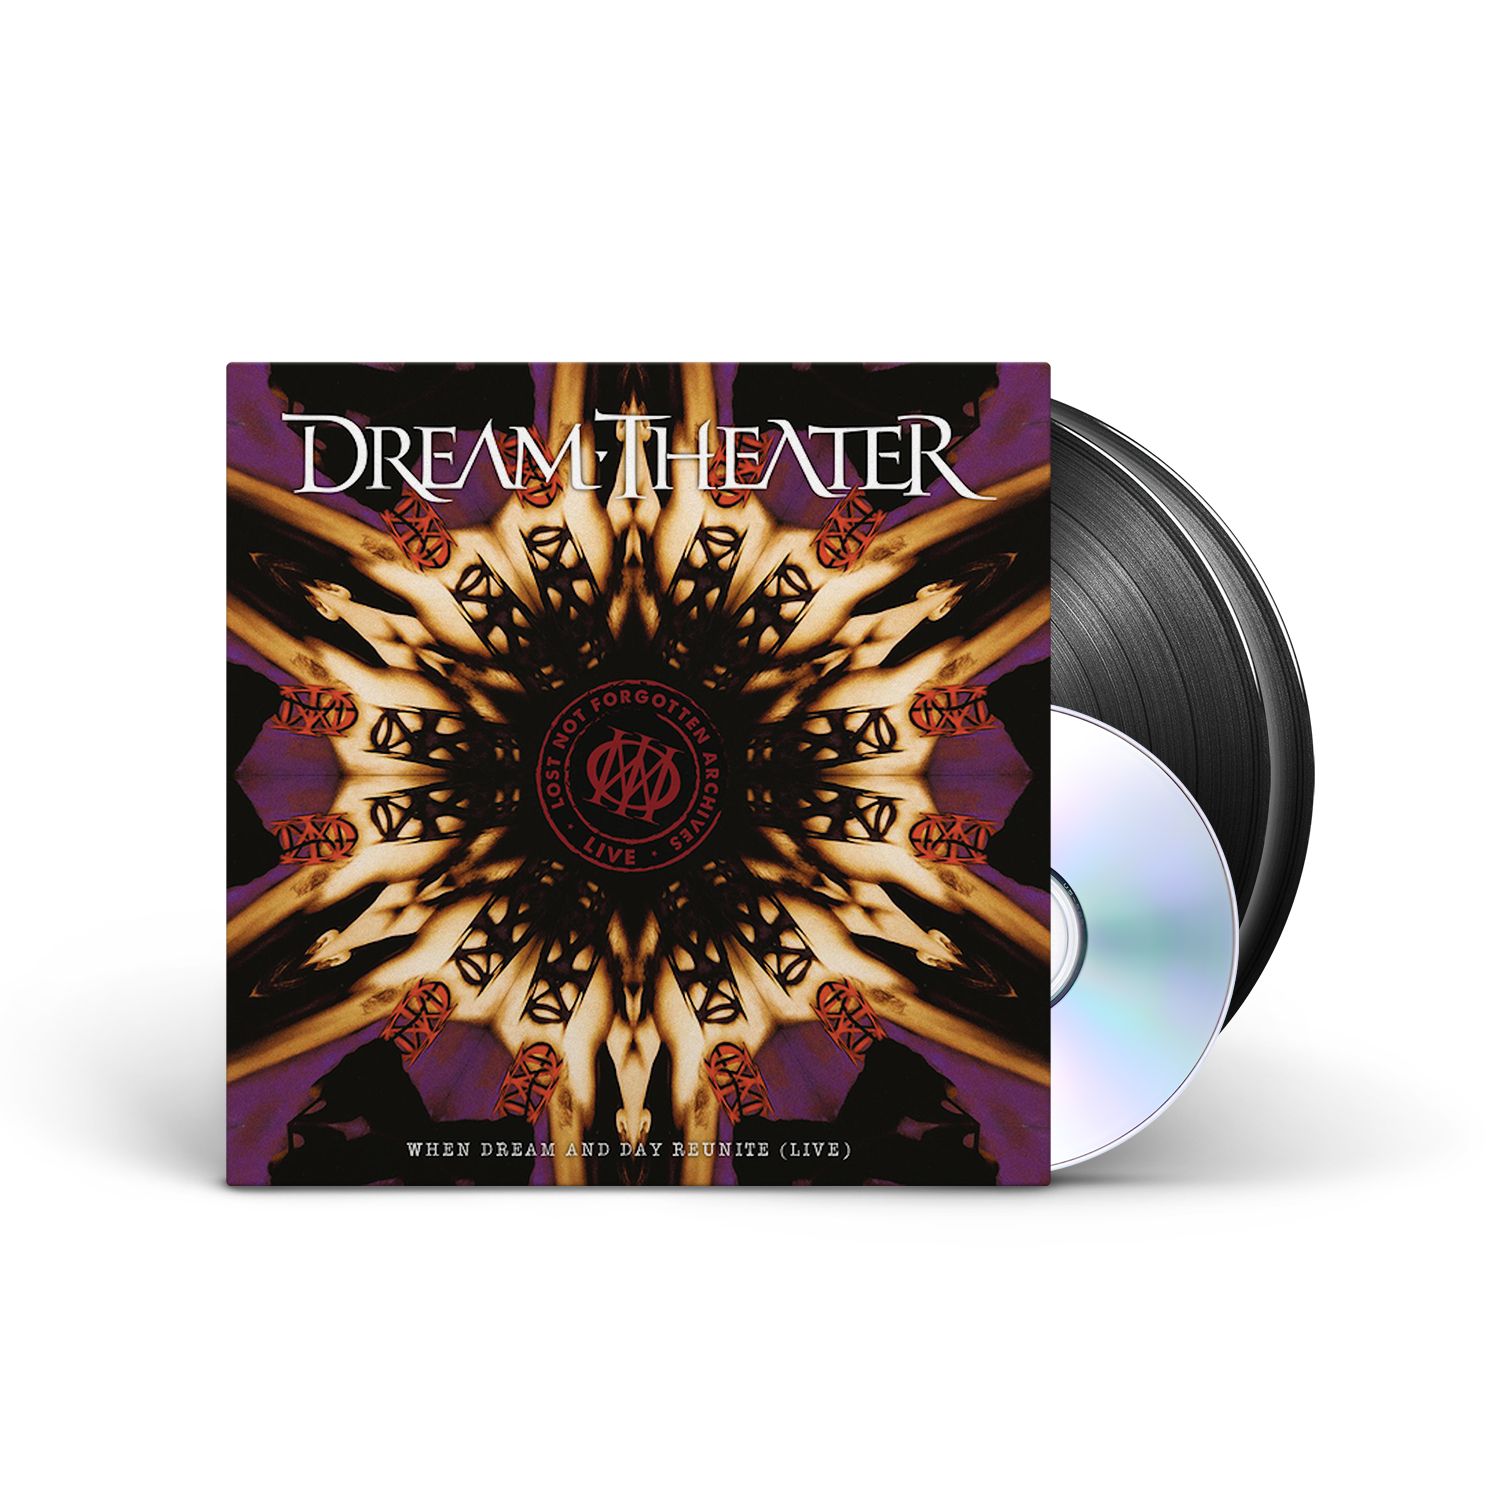 Dream Theater - Lost Not Forgotten Archives: When Dream And Day Reunite (Live) Black 2xLP + CD + Digital Download